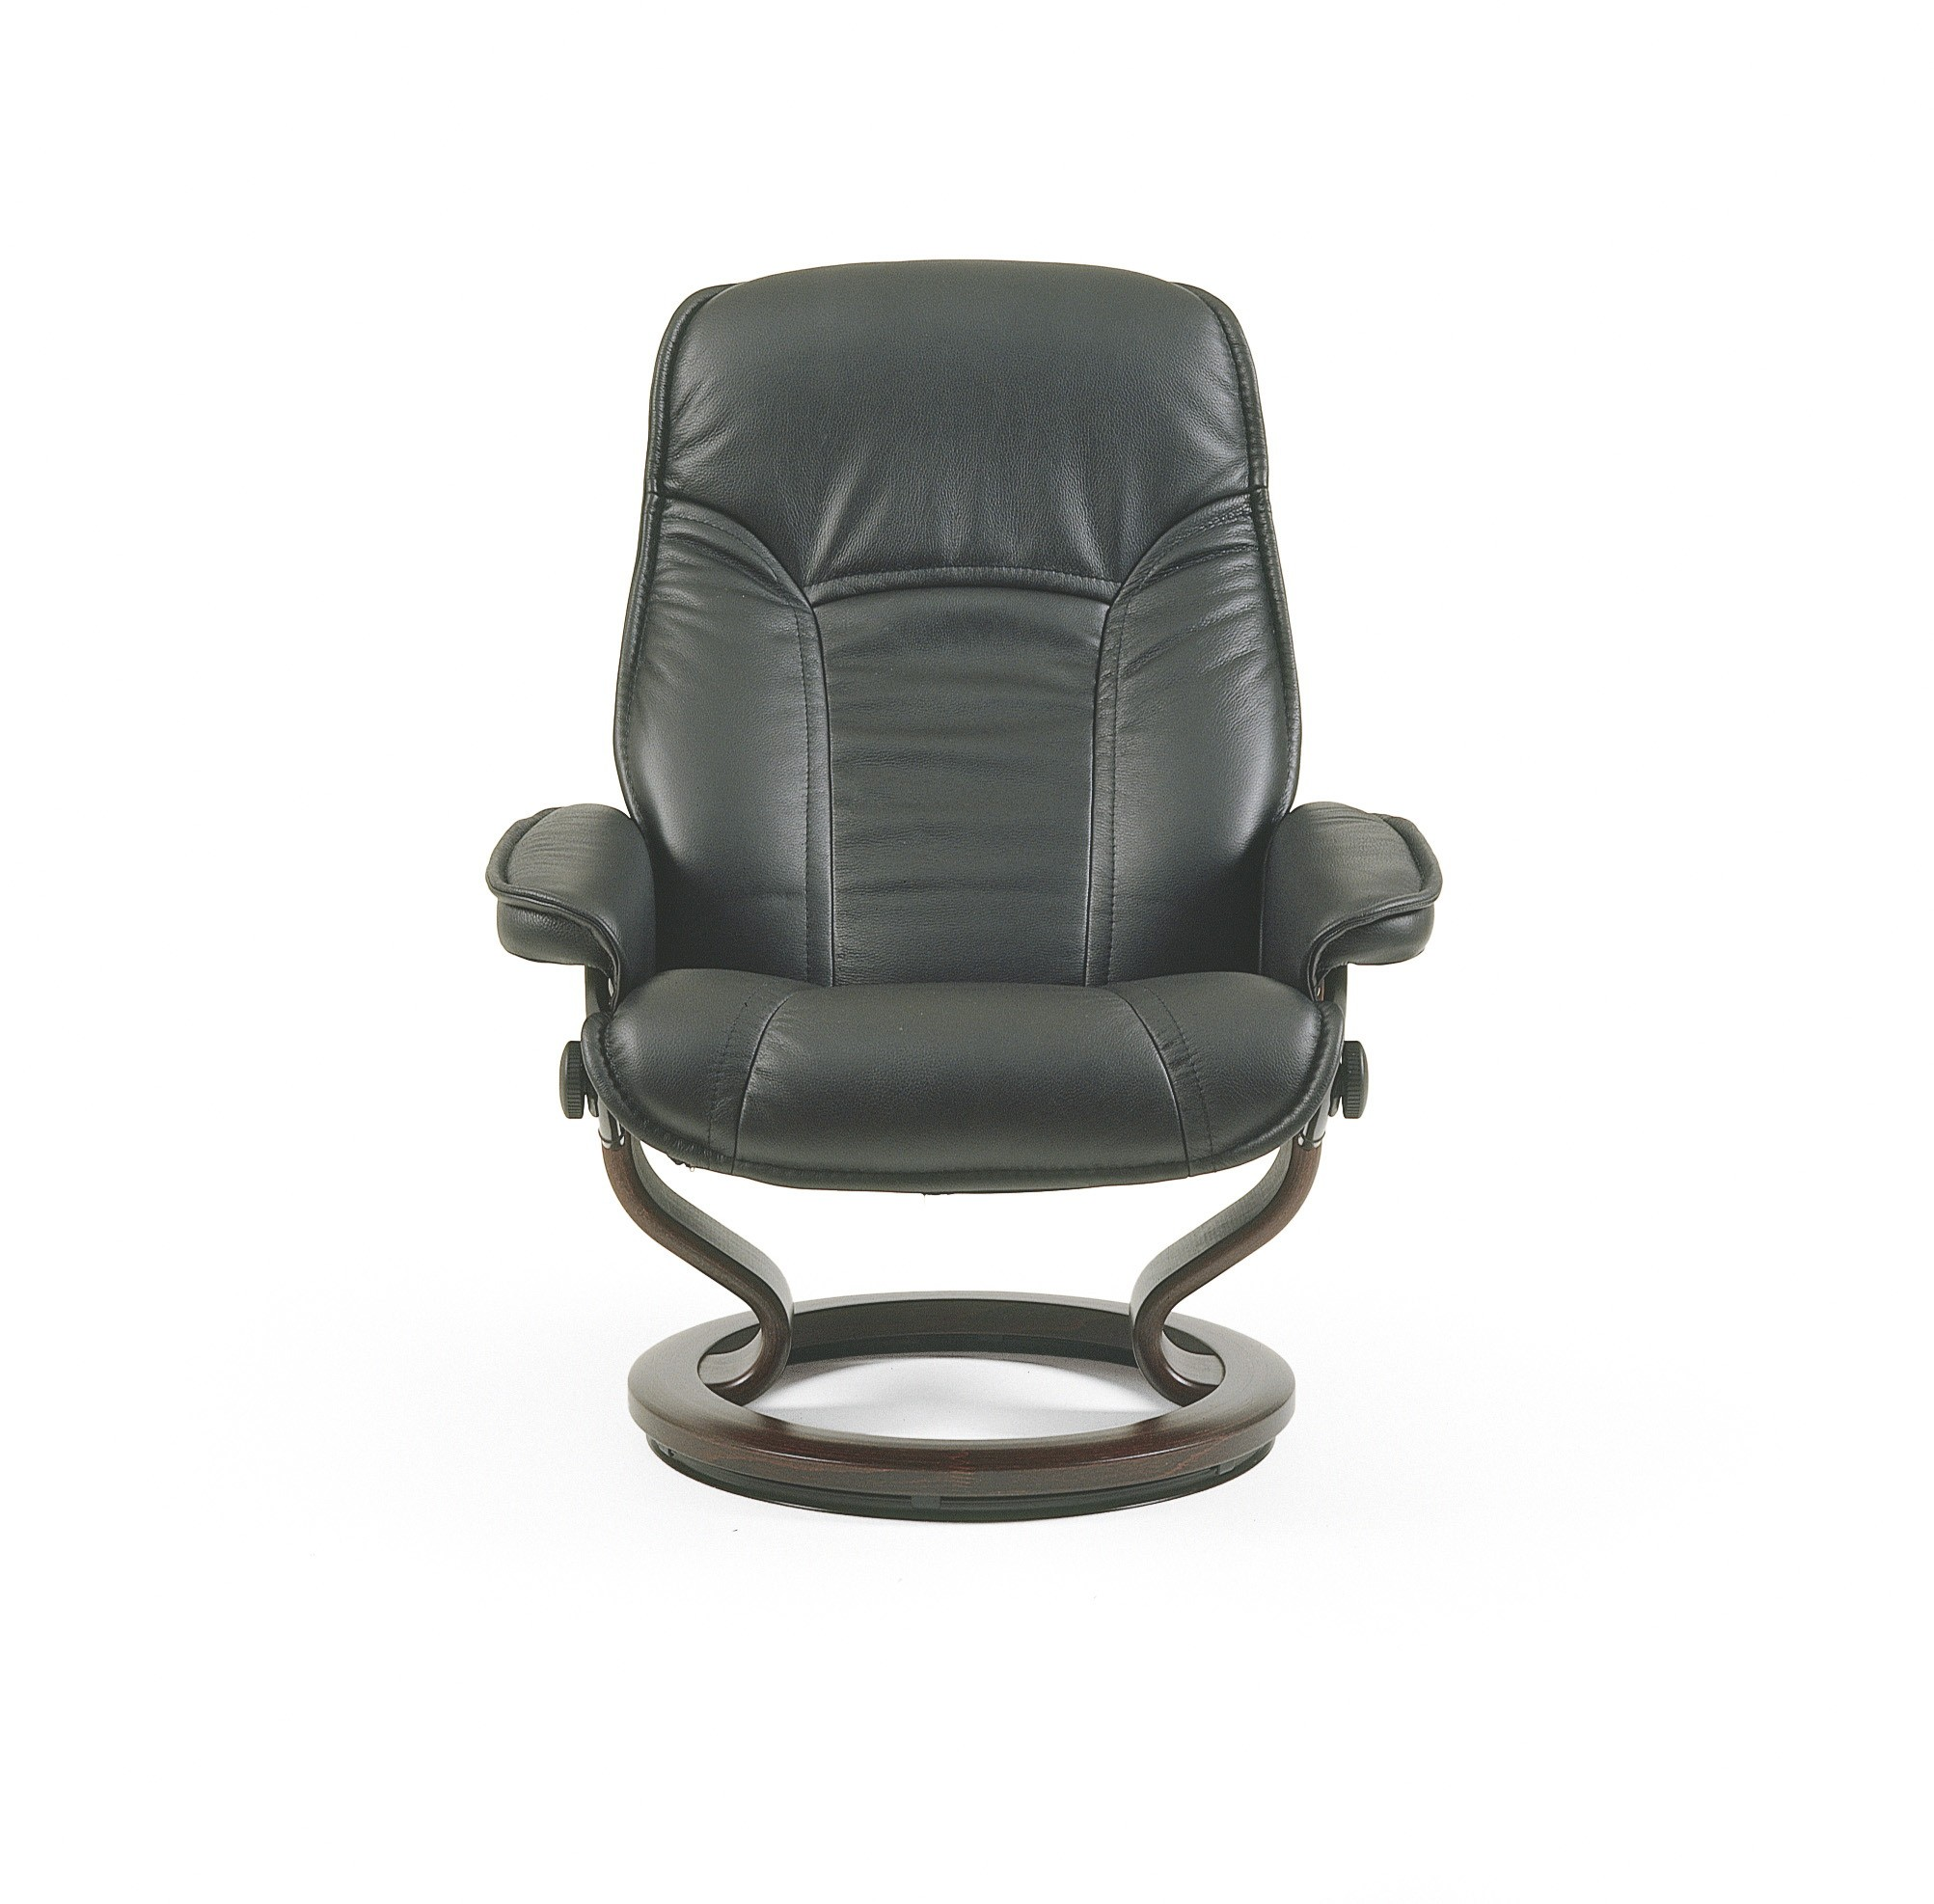 Stressless Chair Prices Ekornes Stressless Senator Governor Recliner With